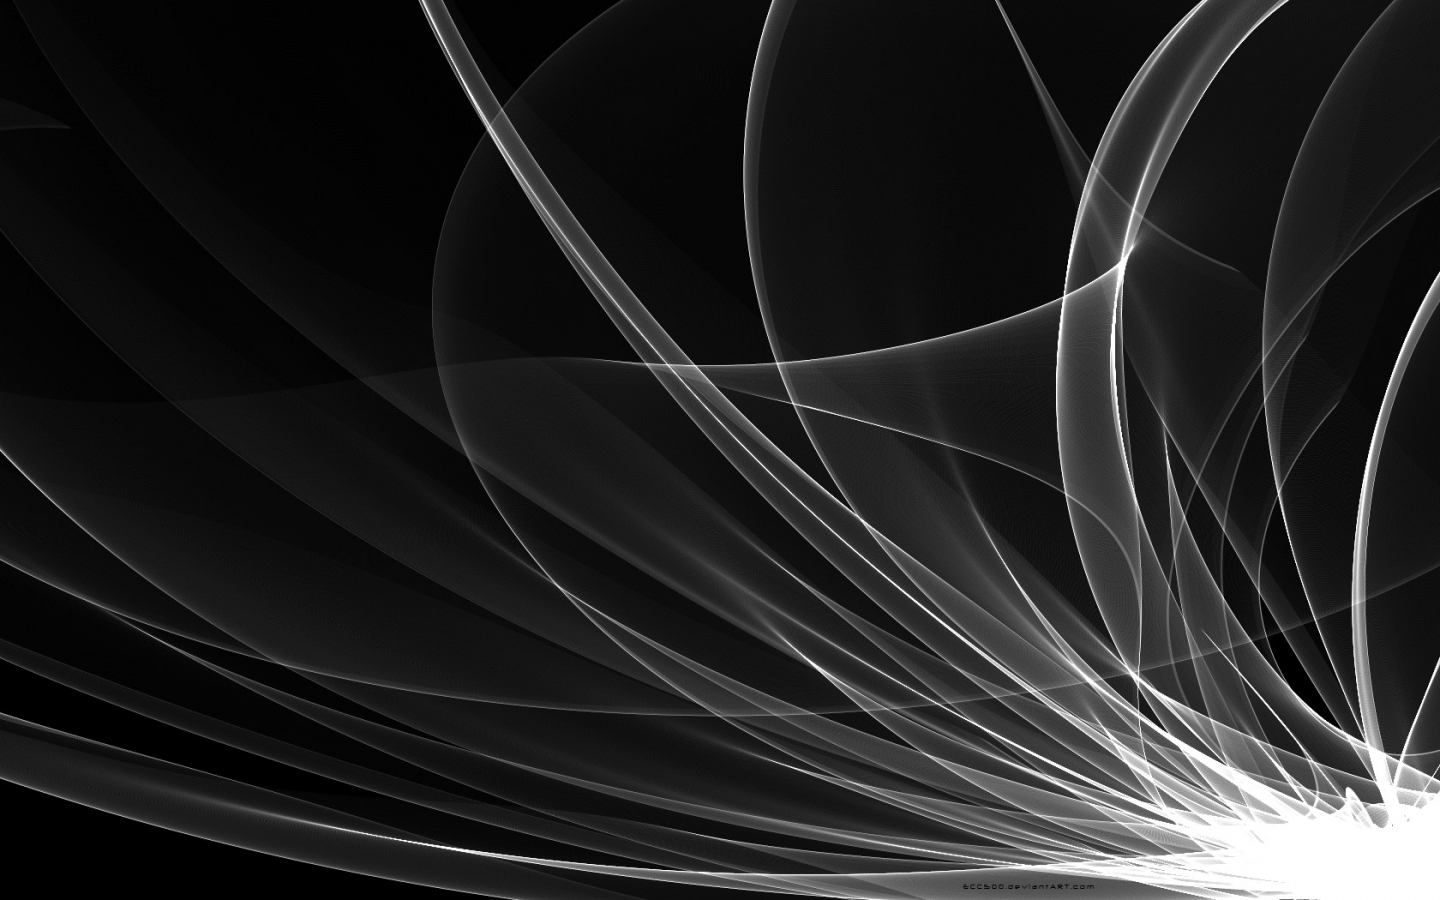 Black and white abstract art 25 free wallpaper - Black abstract background ...